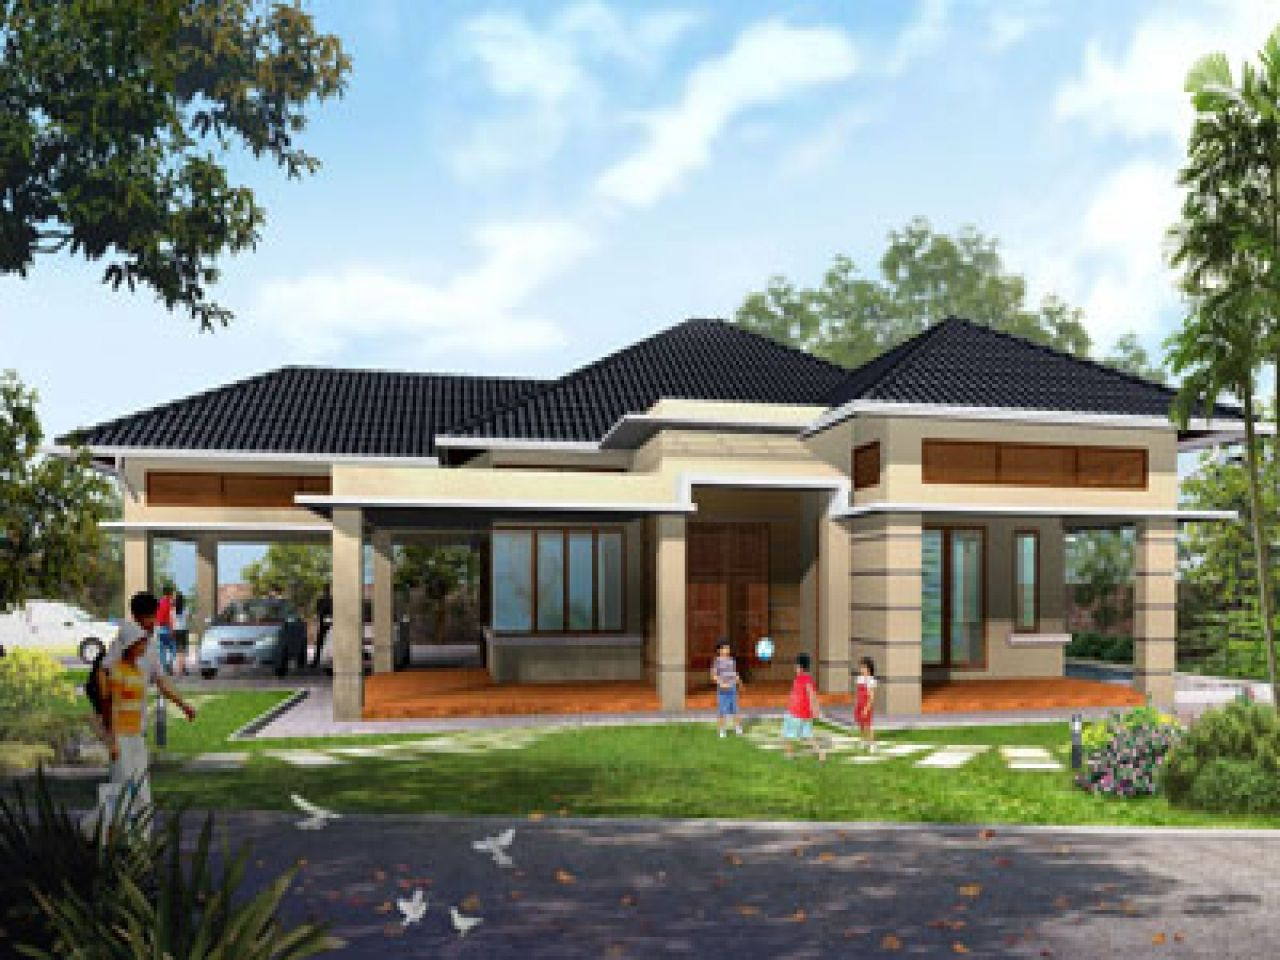 One Story House Plans Single Storey Design Rustic Home Ideas Picture Colonial House Plans One Storey House Southern House Plans